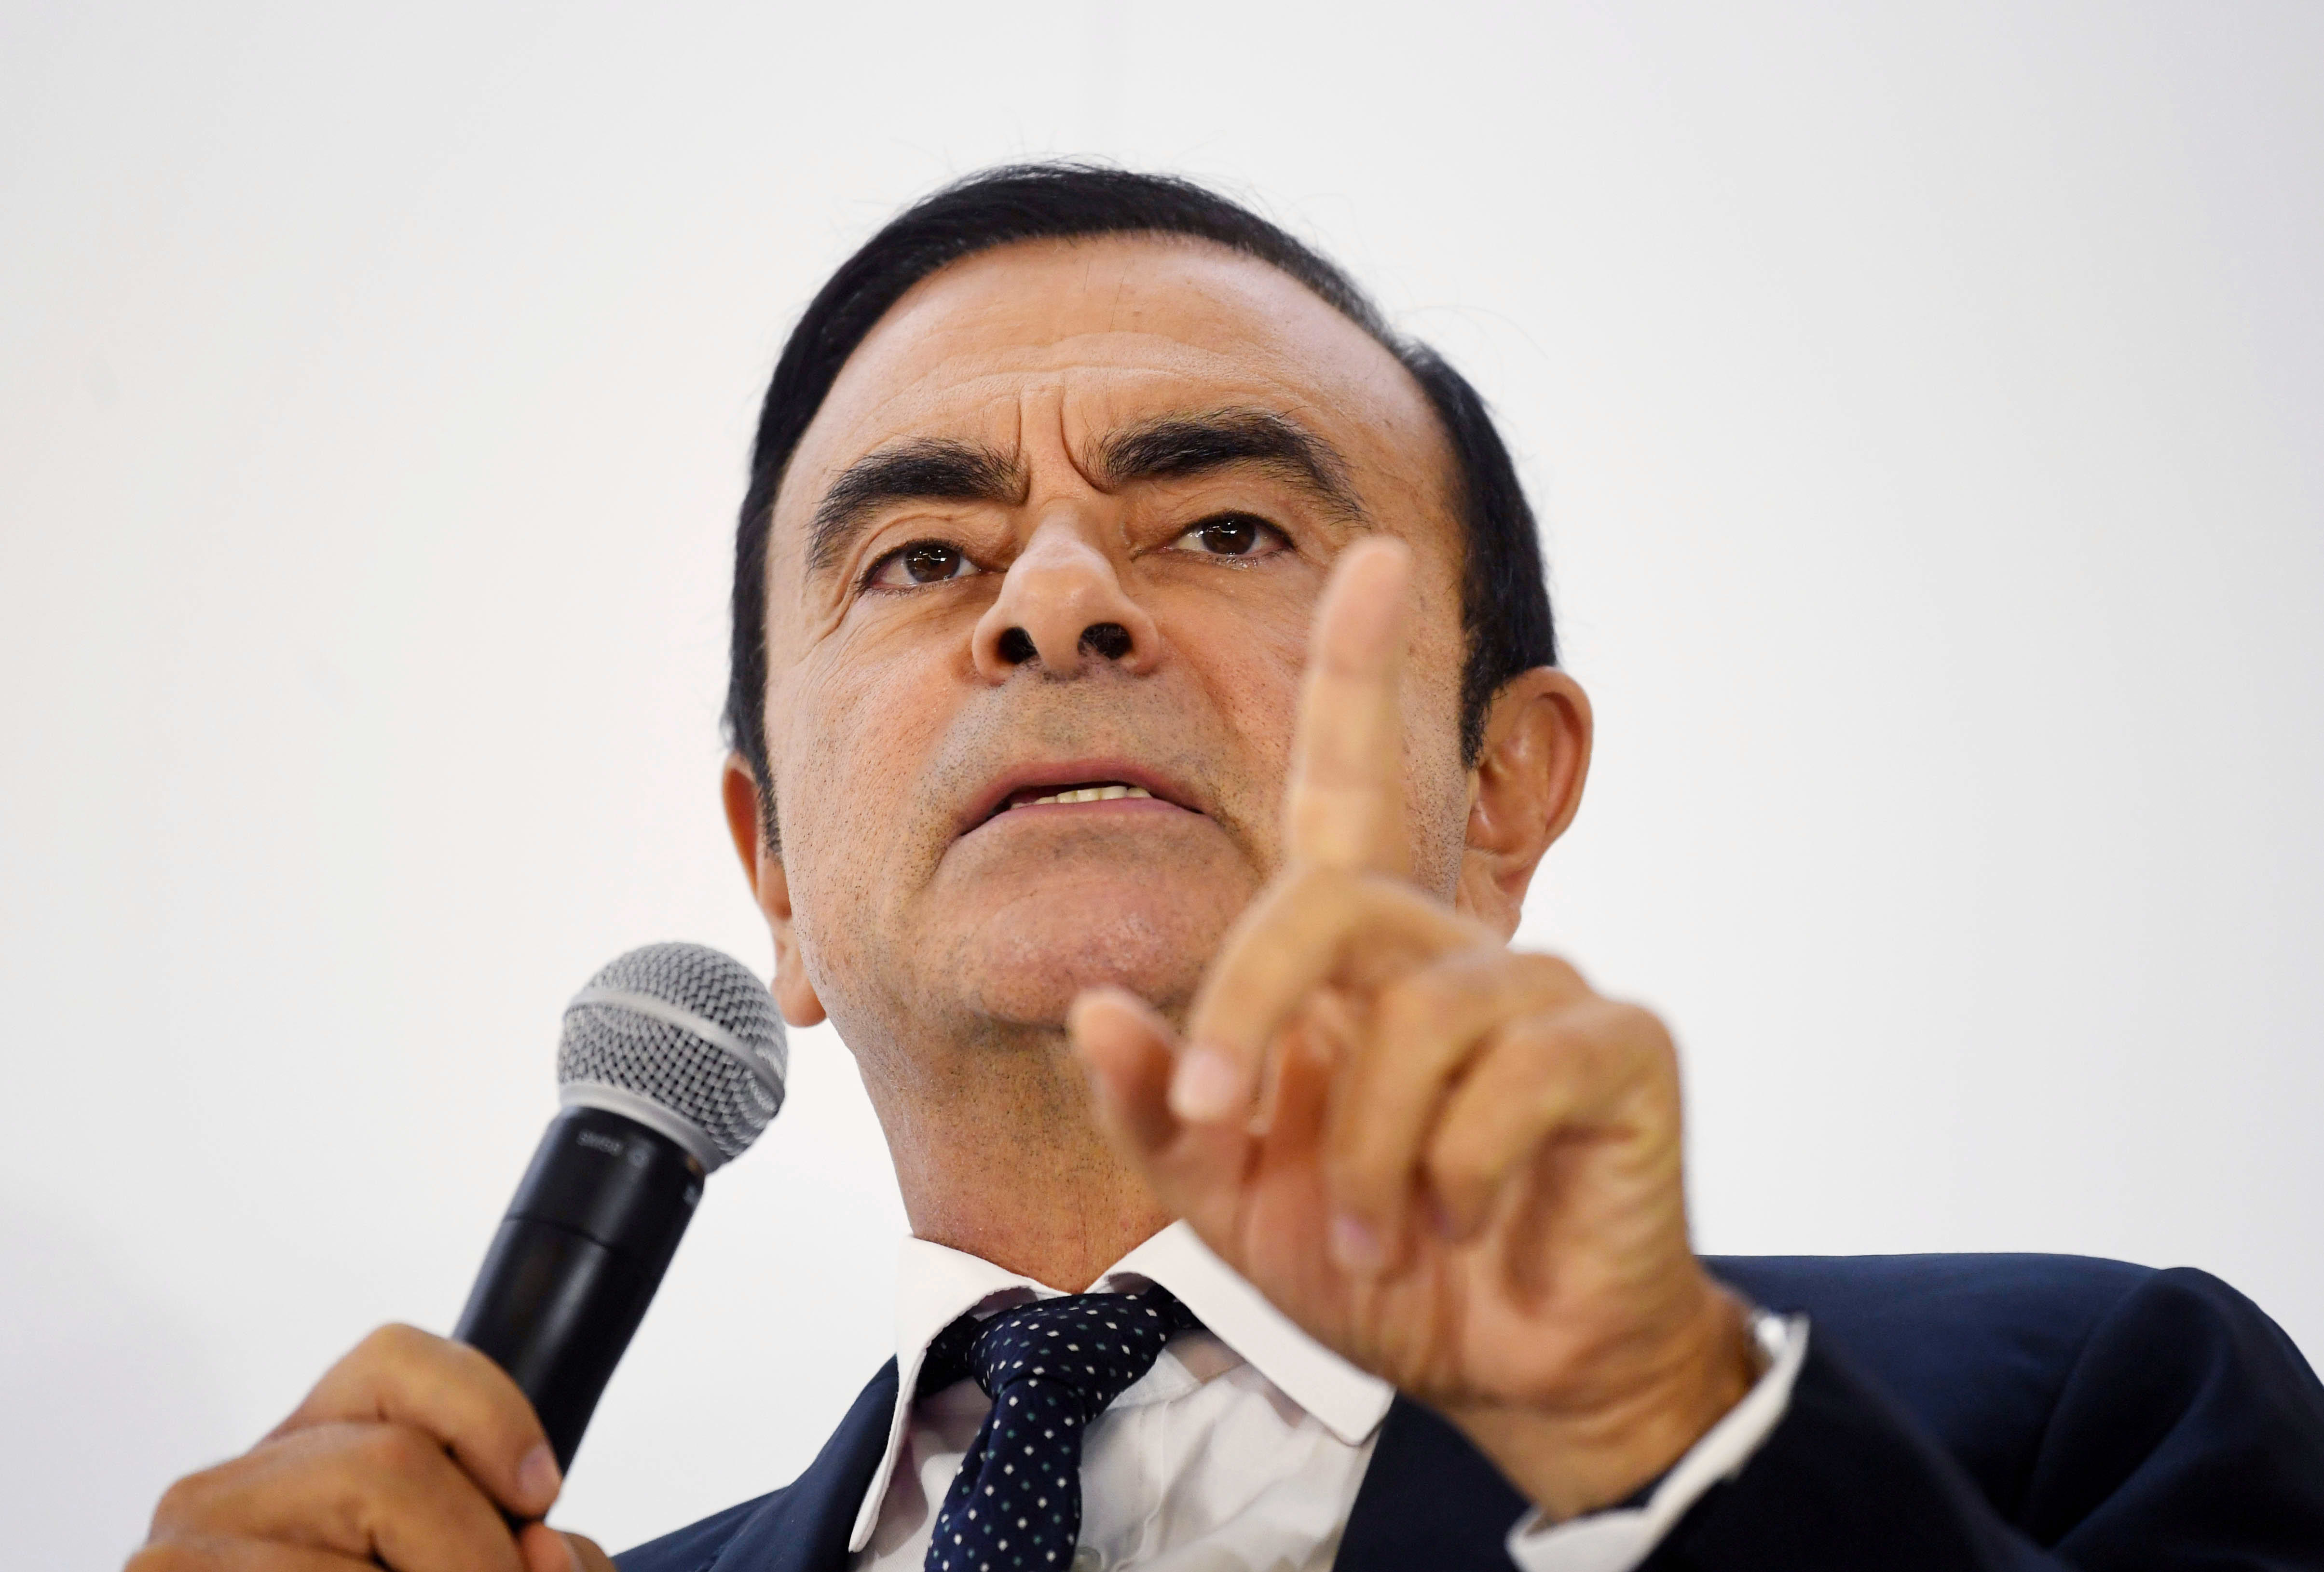 exnissan-boss-carlos-ghosn-launches-business-program-to-revive-lebanons-struggling-economy